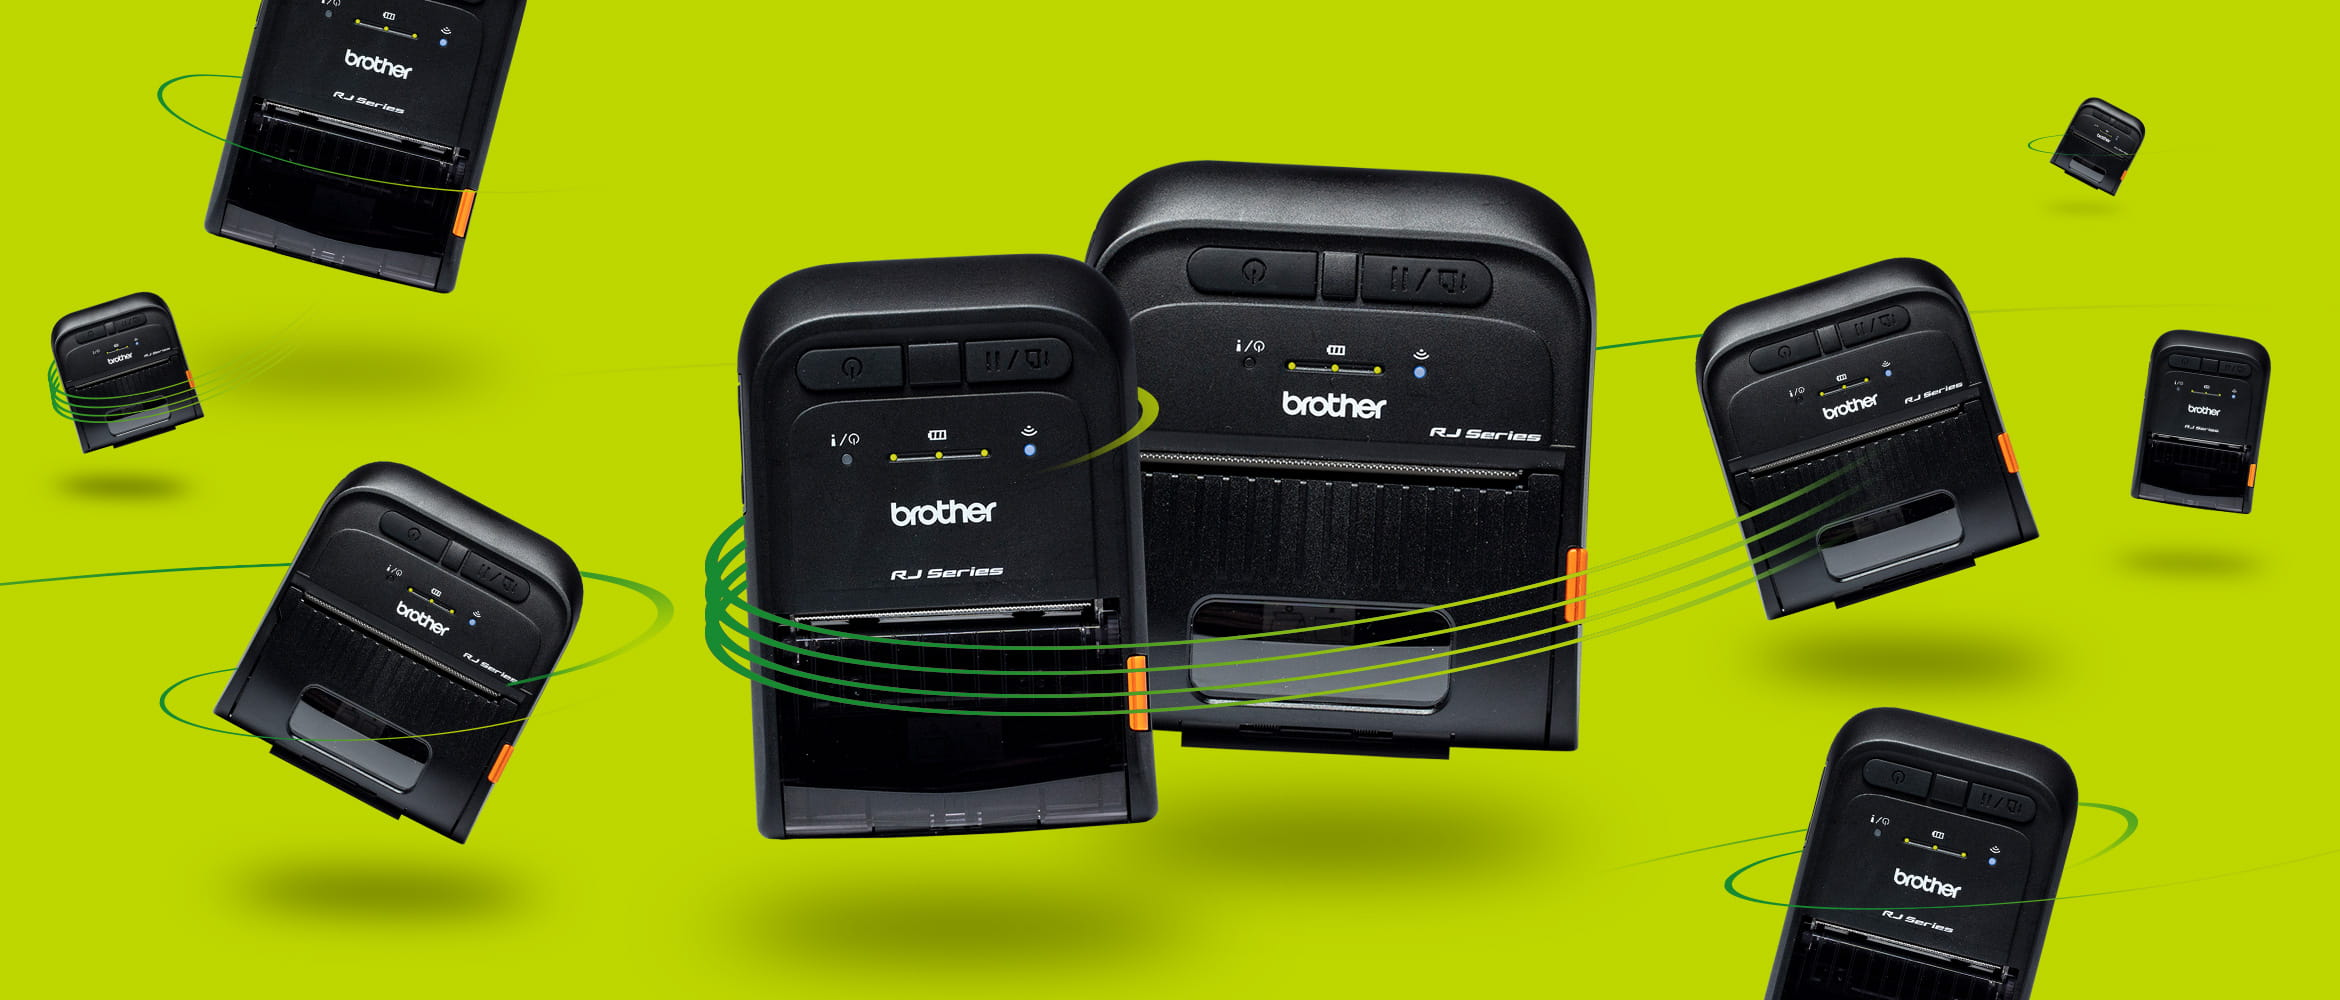 RJ-2 and RJ-3 mobile printers on lime green background